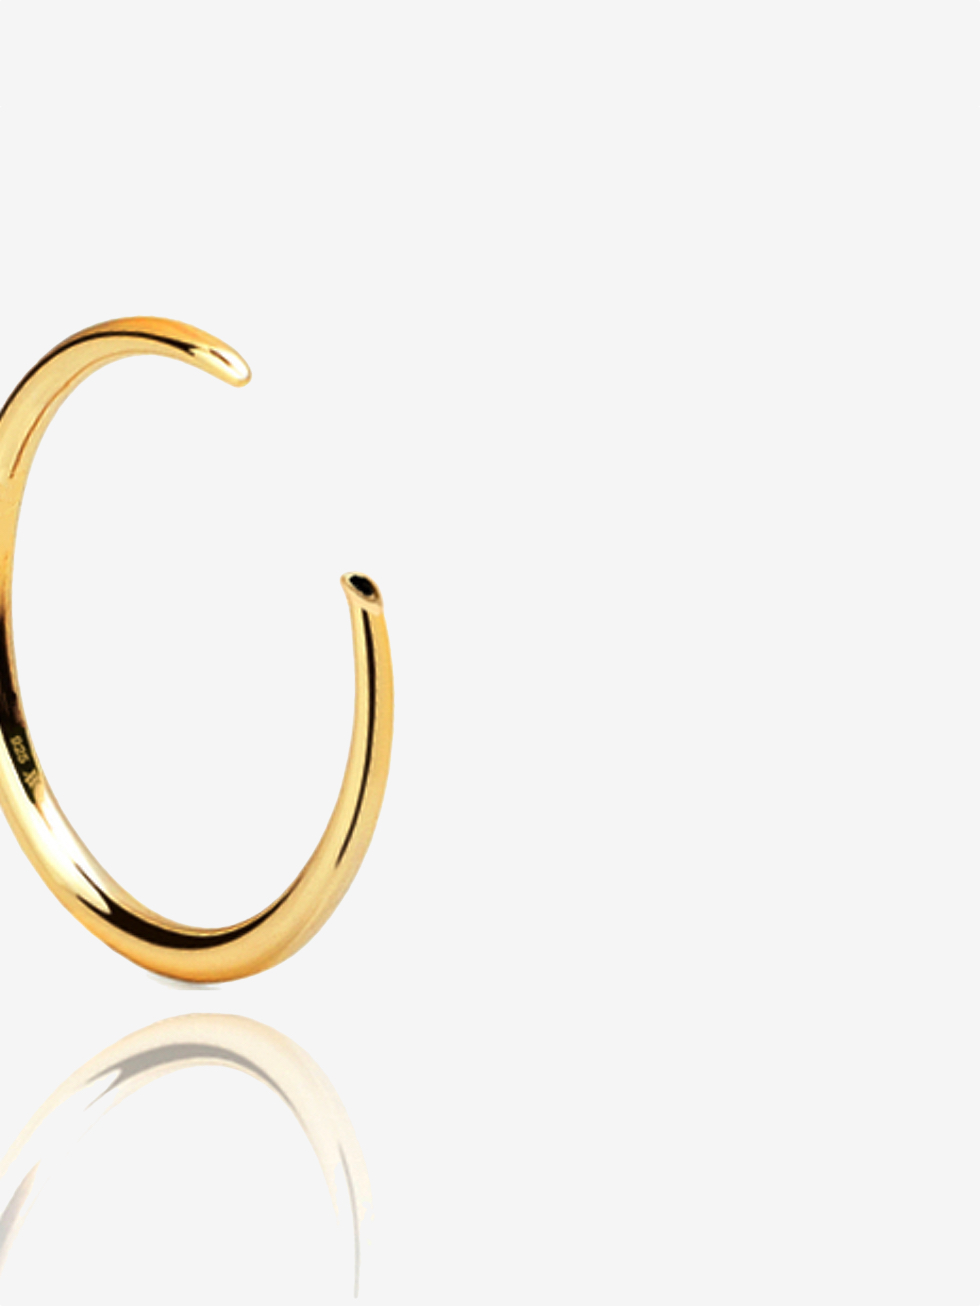 PSIC CZ gold ring